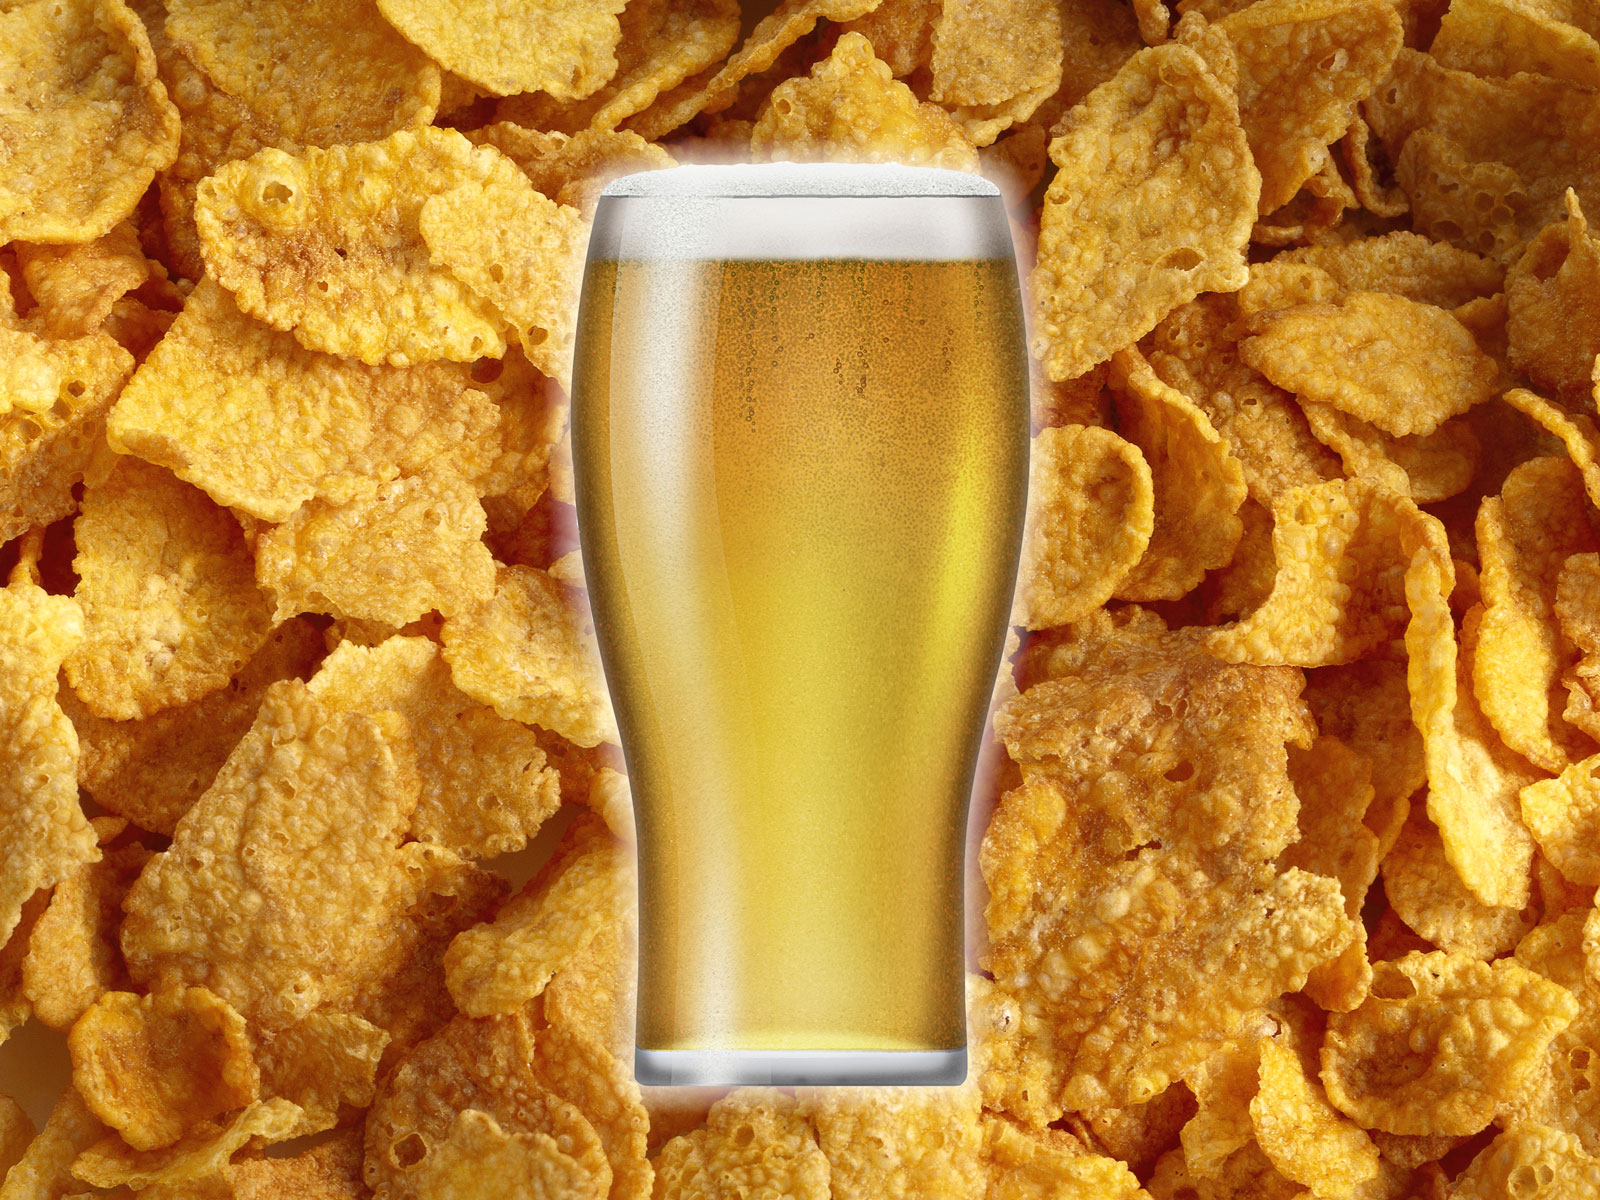 Corn Flake Beer Is Kellogg's Latest Plan to Fight Food Waste